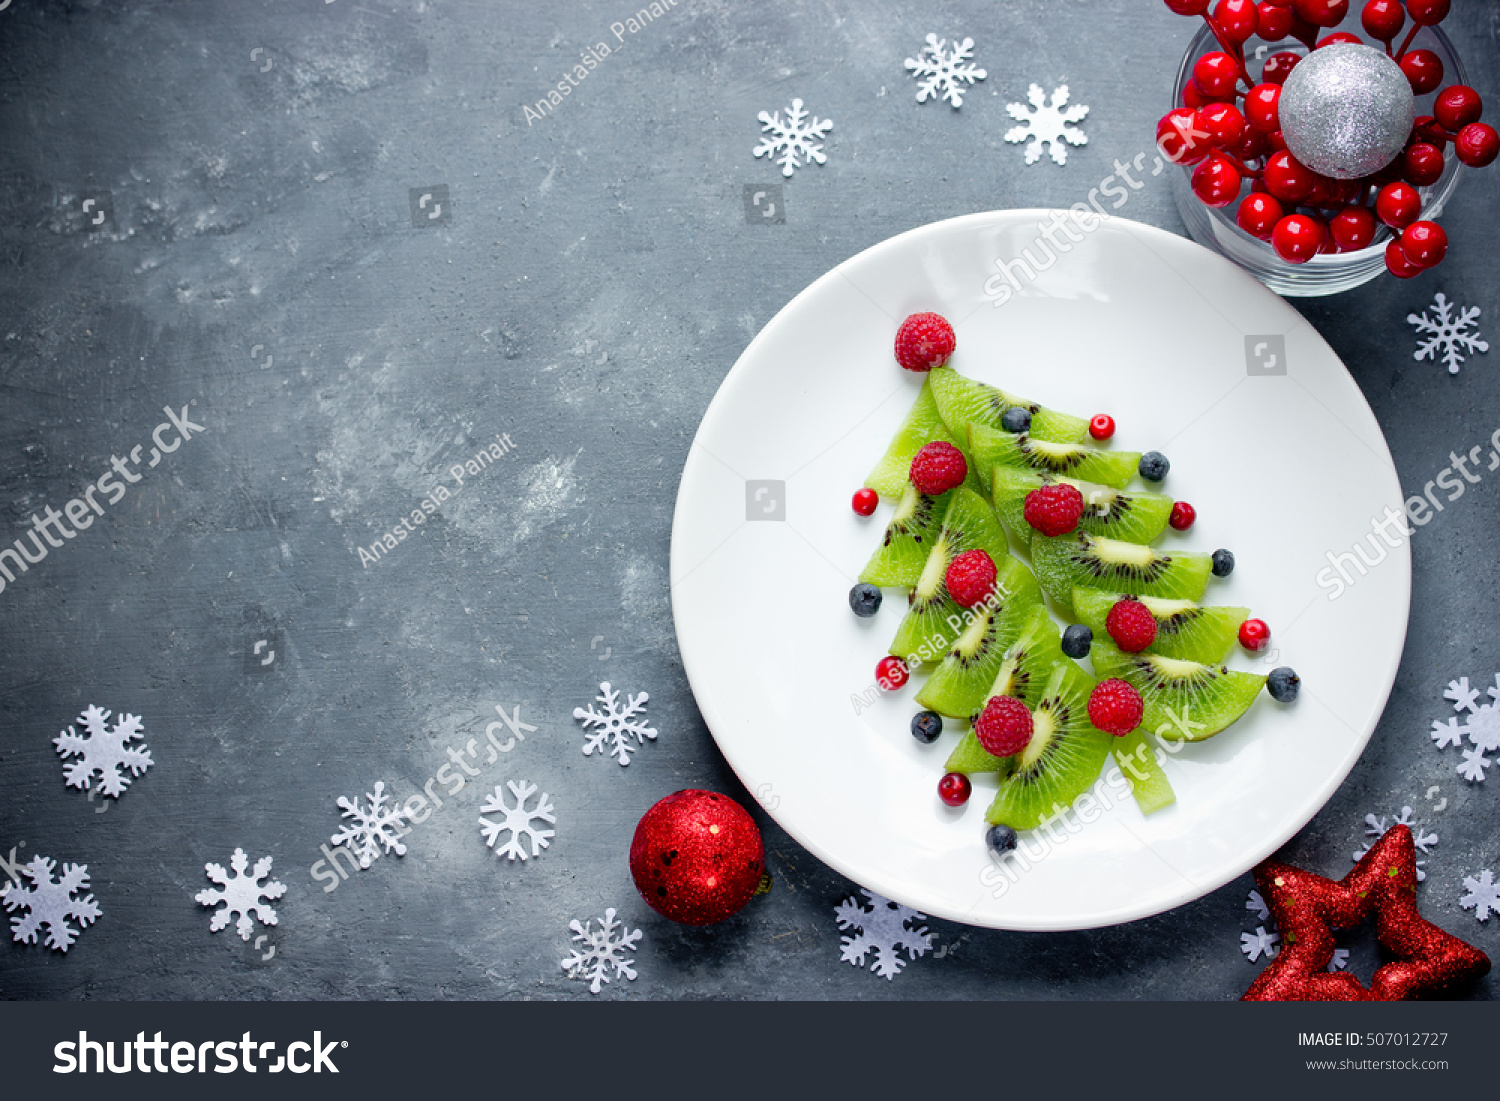 Funny edible Christmas tree, Christmas breakfast idea for kids. Beautiful Christmas and New Year food background top view blank space for text #507012727